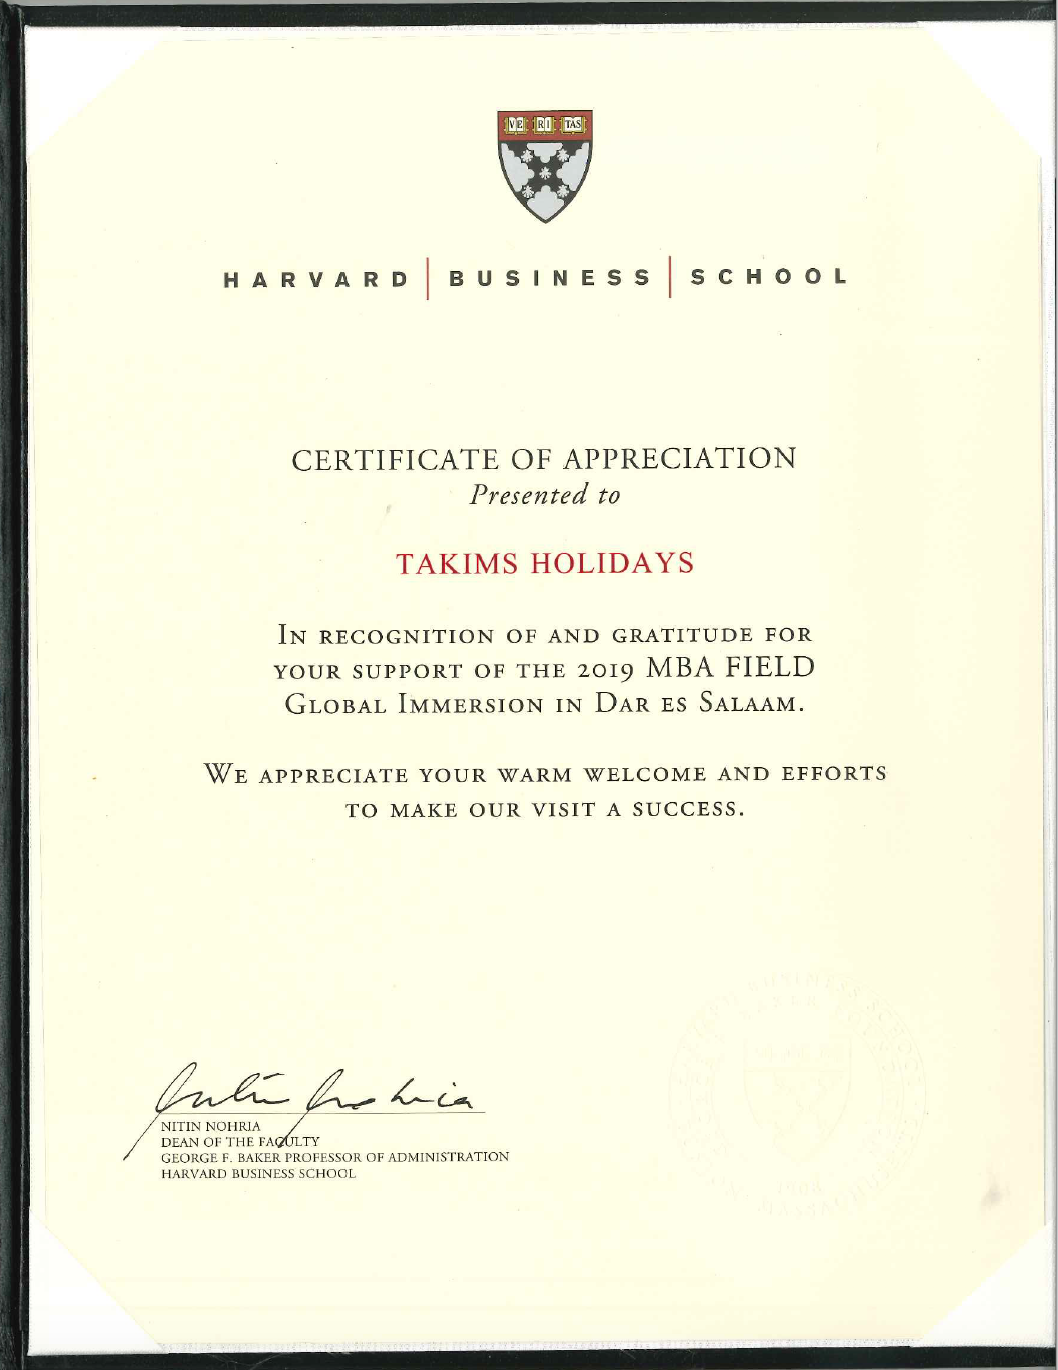 Takims Holidays was presented with a certificate of appreciation from the Harvard Business School in recognition of and gratitude for the support.